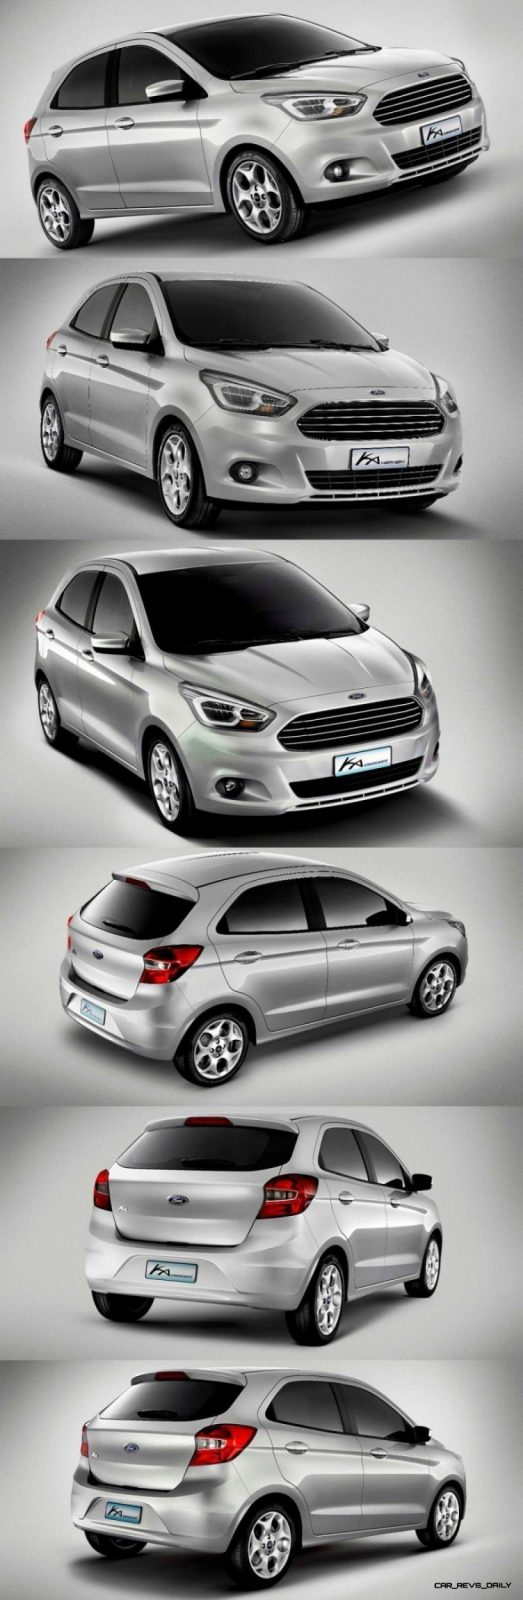 Ford-Ka-Concept-Debuts-Funky-New-Style-and-Affordable-Mechanicals-in-Brazil1-vert-1177x3600